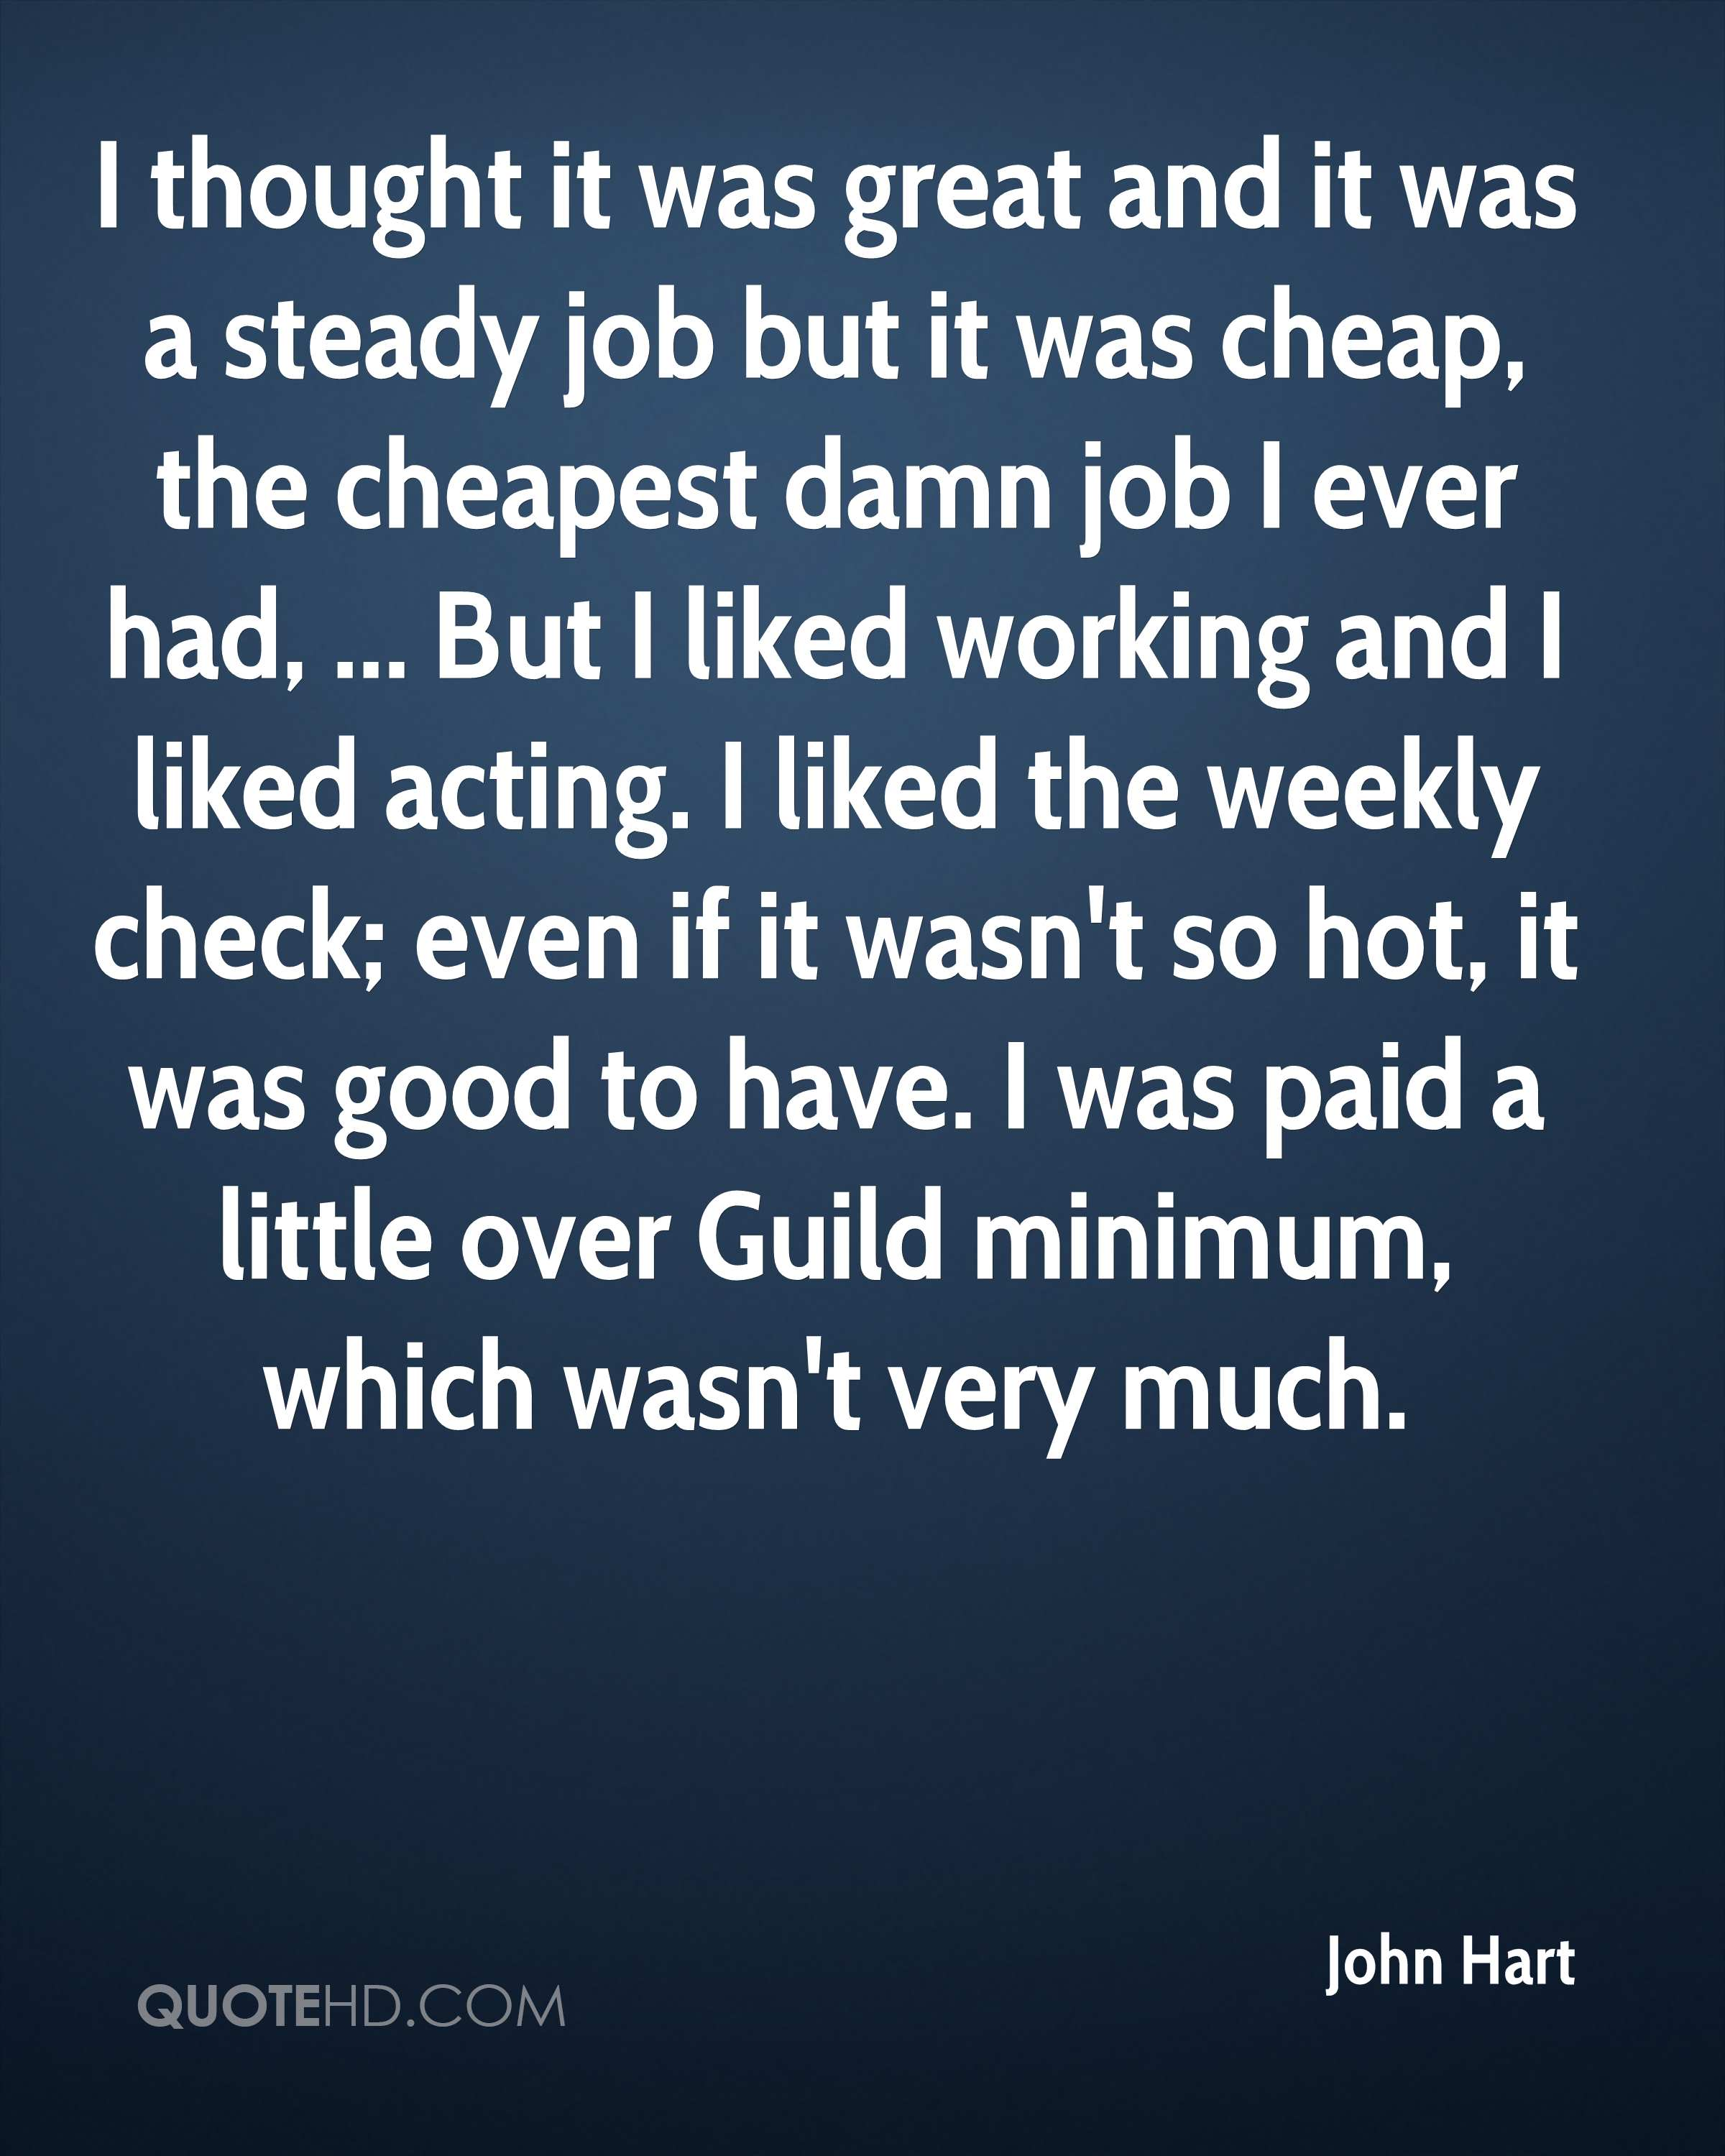 I thought it was great and it was a steady job but it was cheap, the cheapest damn job I ever had, ... But I liked working and I liked acting. I liked the weekly check; even if it wasn't so hot, it was good to have. I was paid a little over Guild minimum, which wasn't very much.